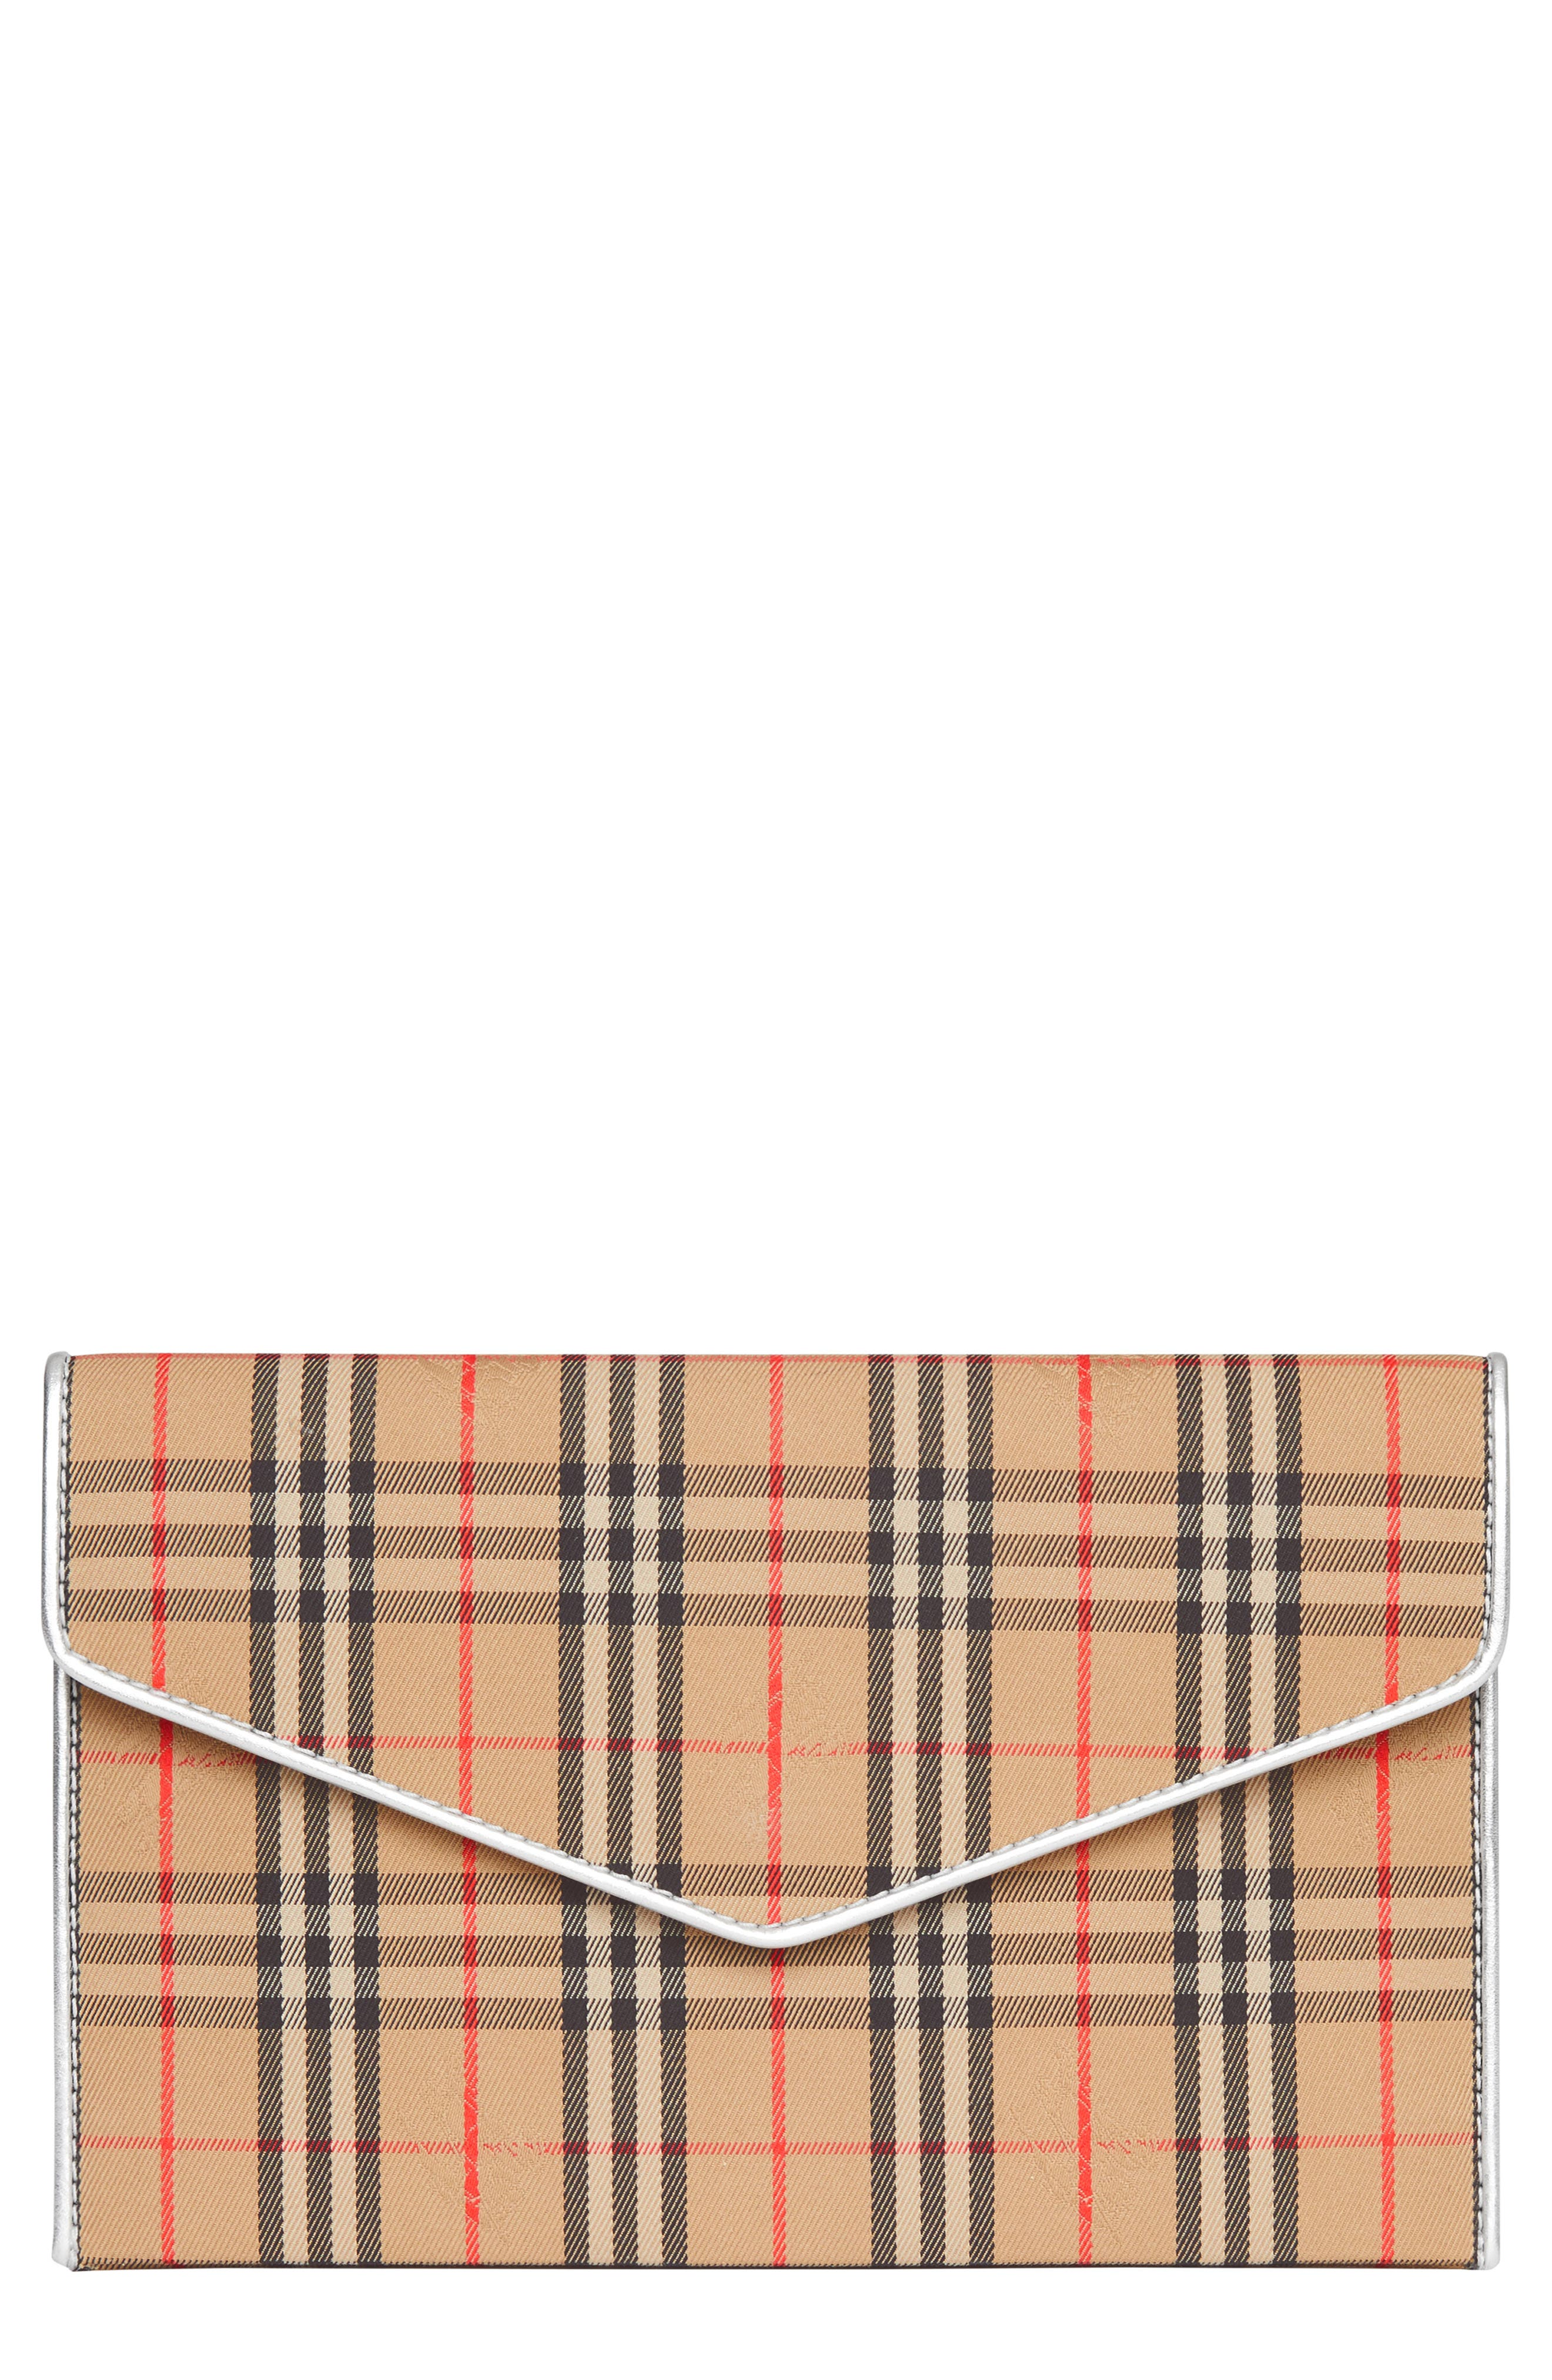 1983 Check Cotton & Leather Envelope Clutch,                         Main,                         color, ANTIQUE YELLOW/ SILVER